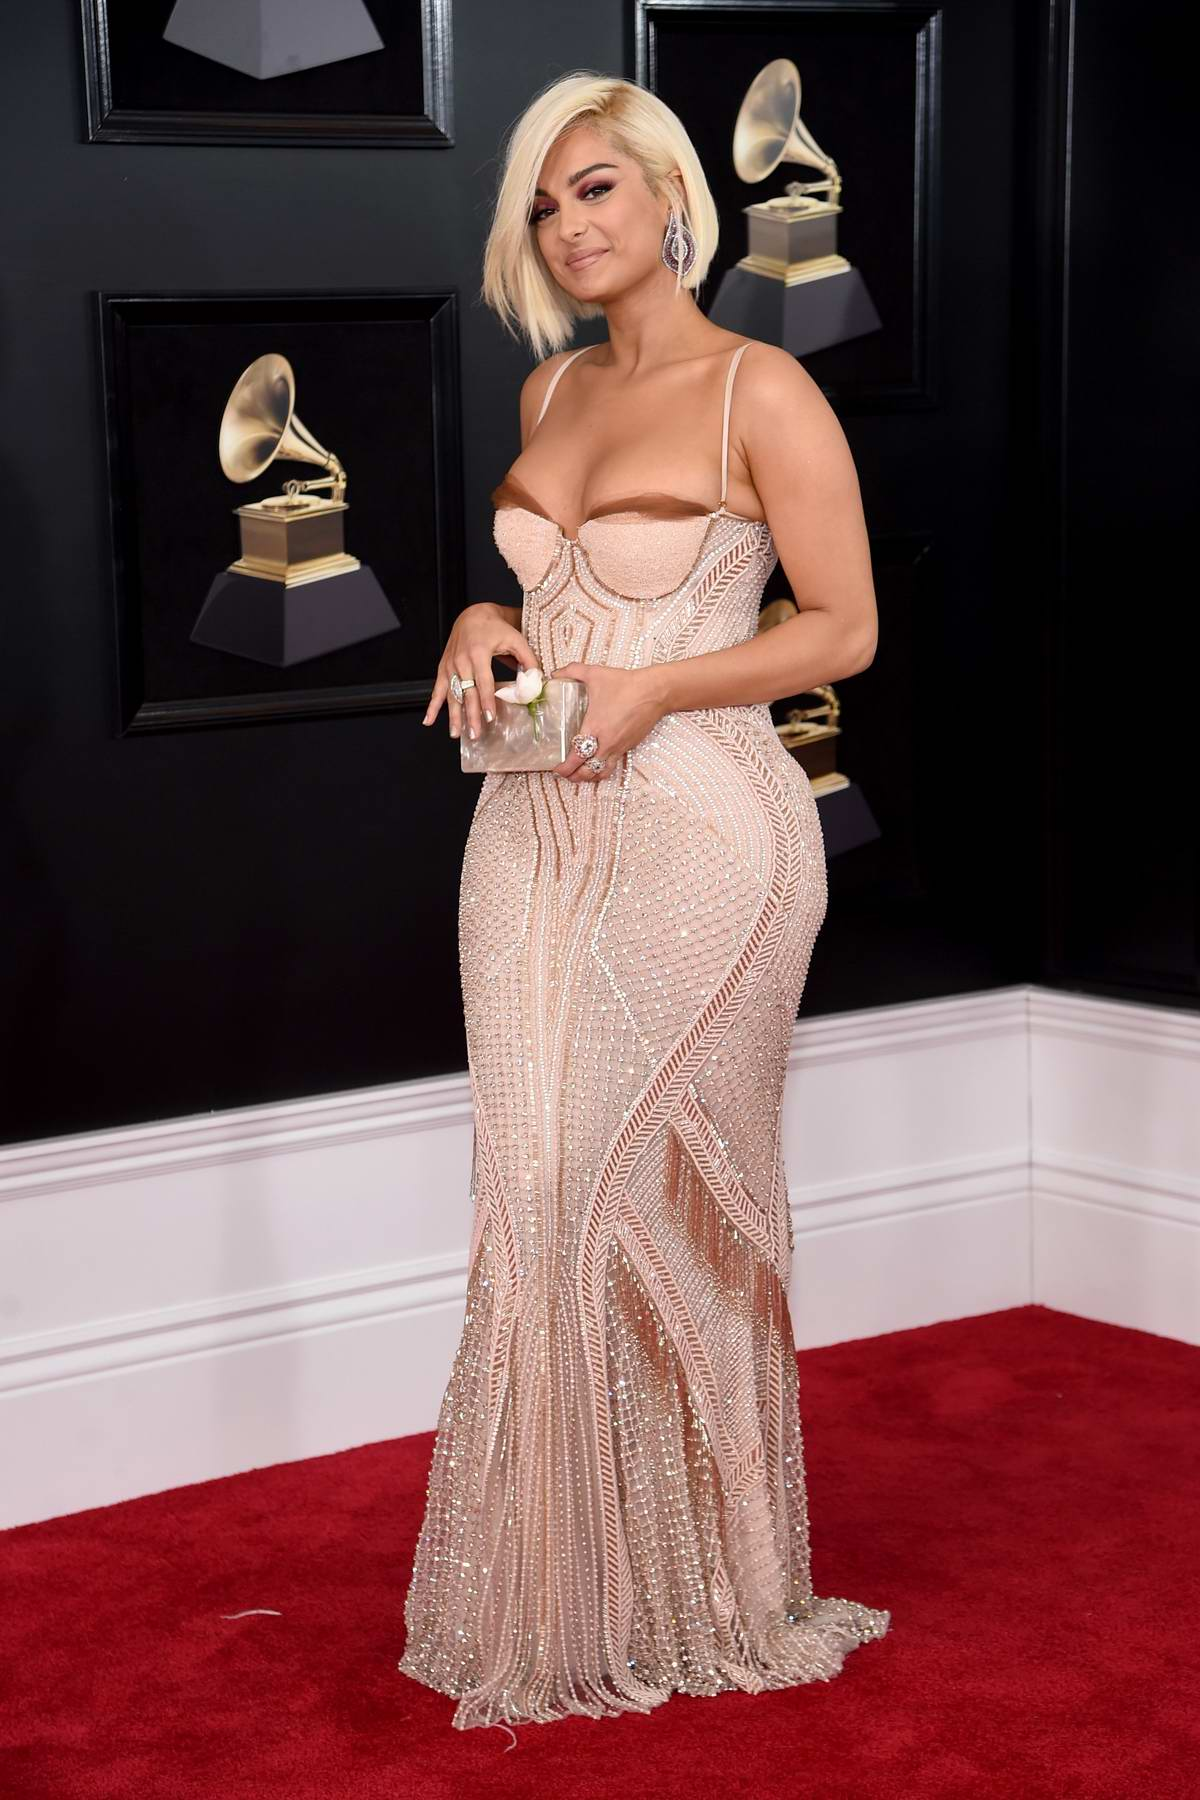 Bebe Rexha attends the 60th Annual Grammy Awards at Madison Square Garden in New York